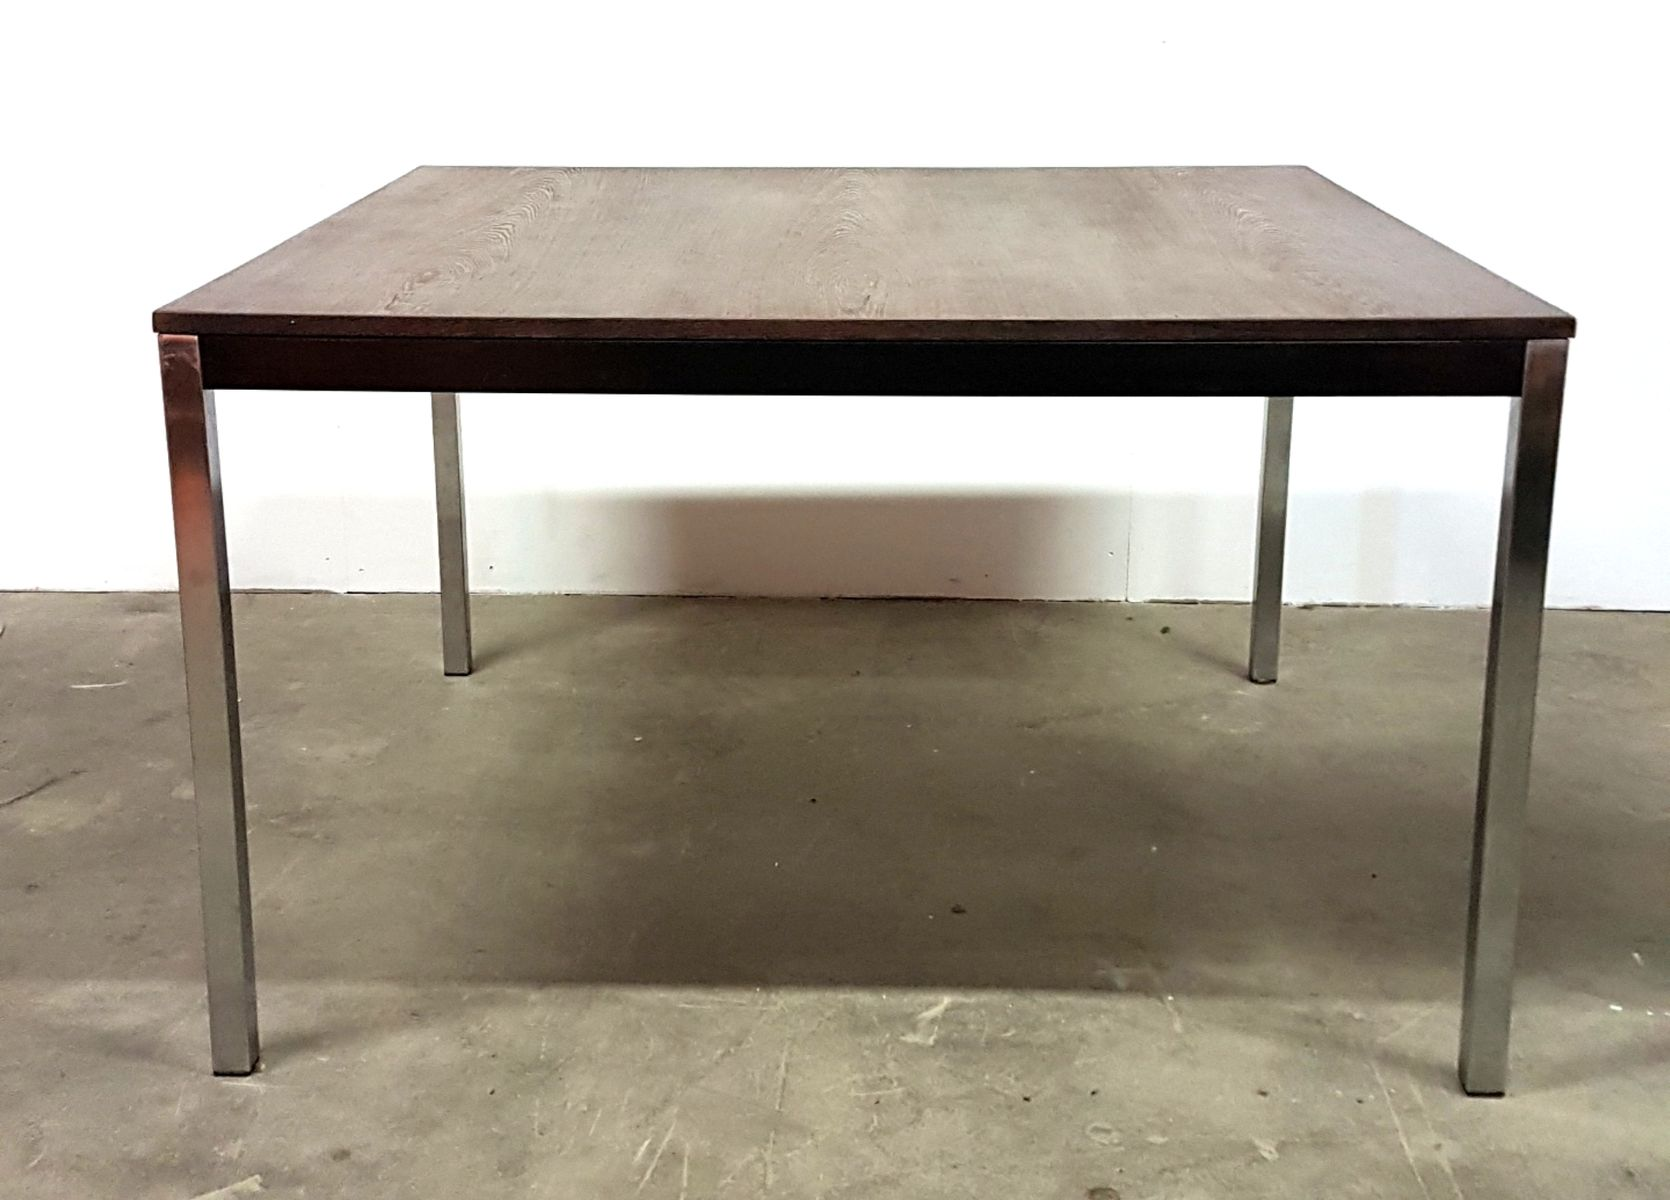 MidCentury Square Wenge Dining Table By Martin Visser For T - Mid century square dining table